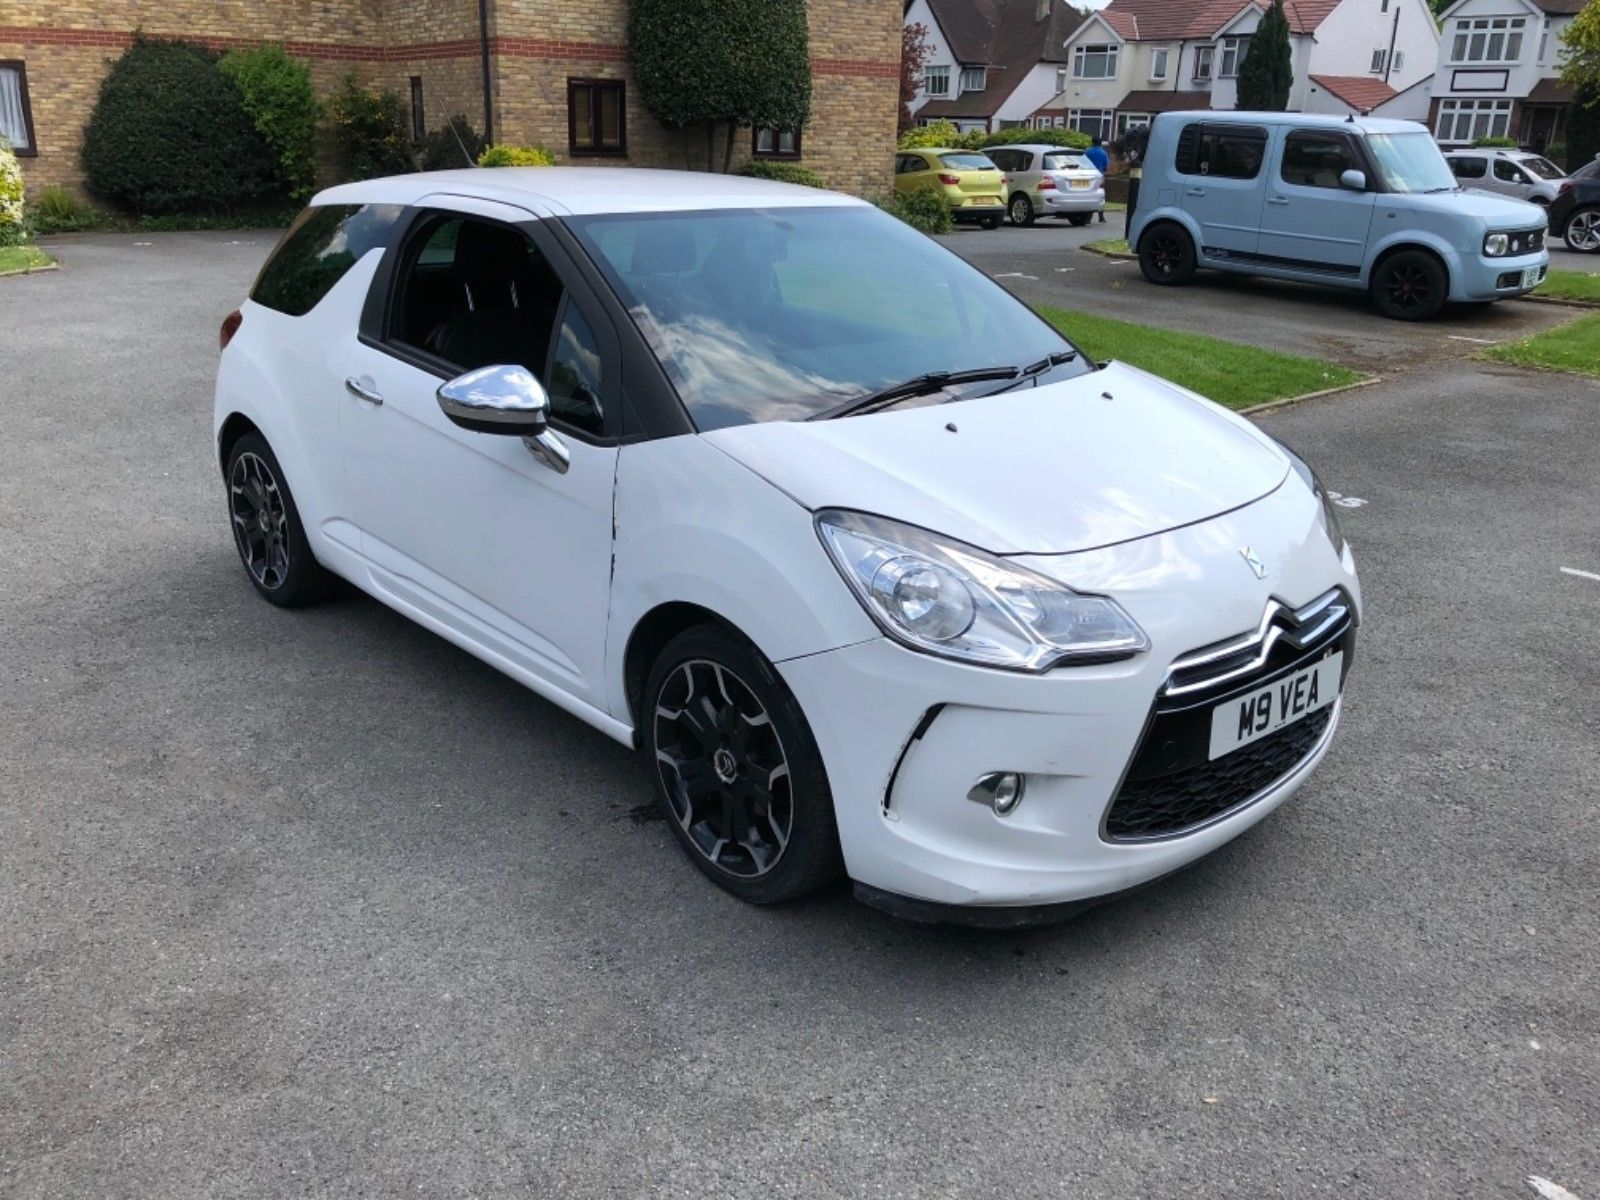 Ebay Citroen Ds3 1 6 Hdi Black And White Minor Salvage Damage Not